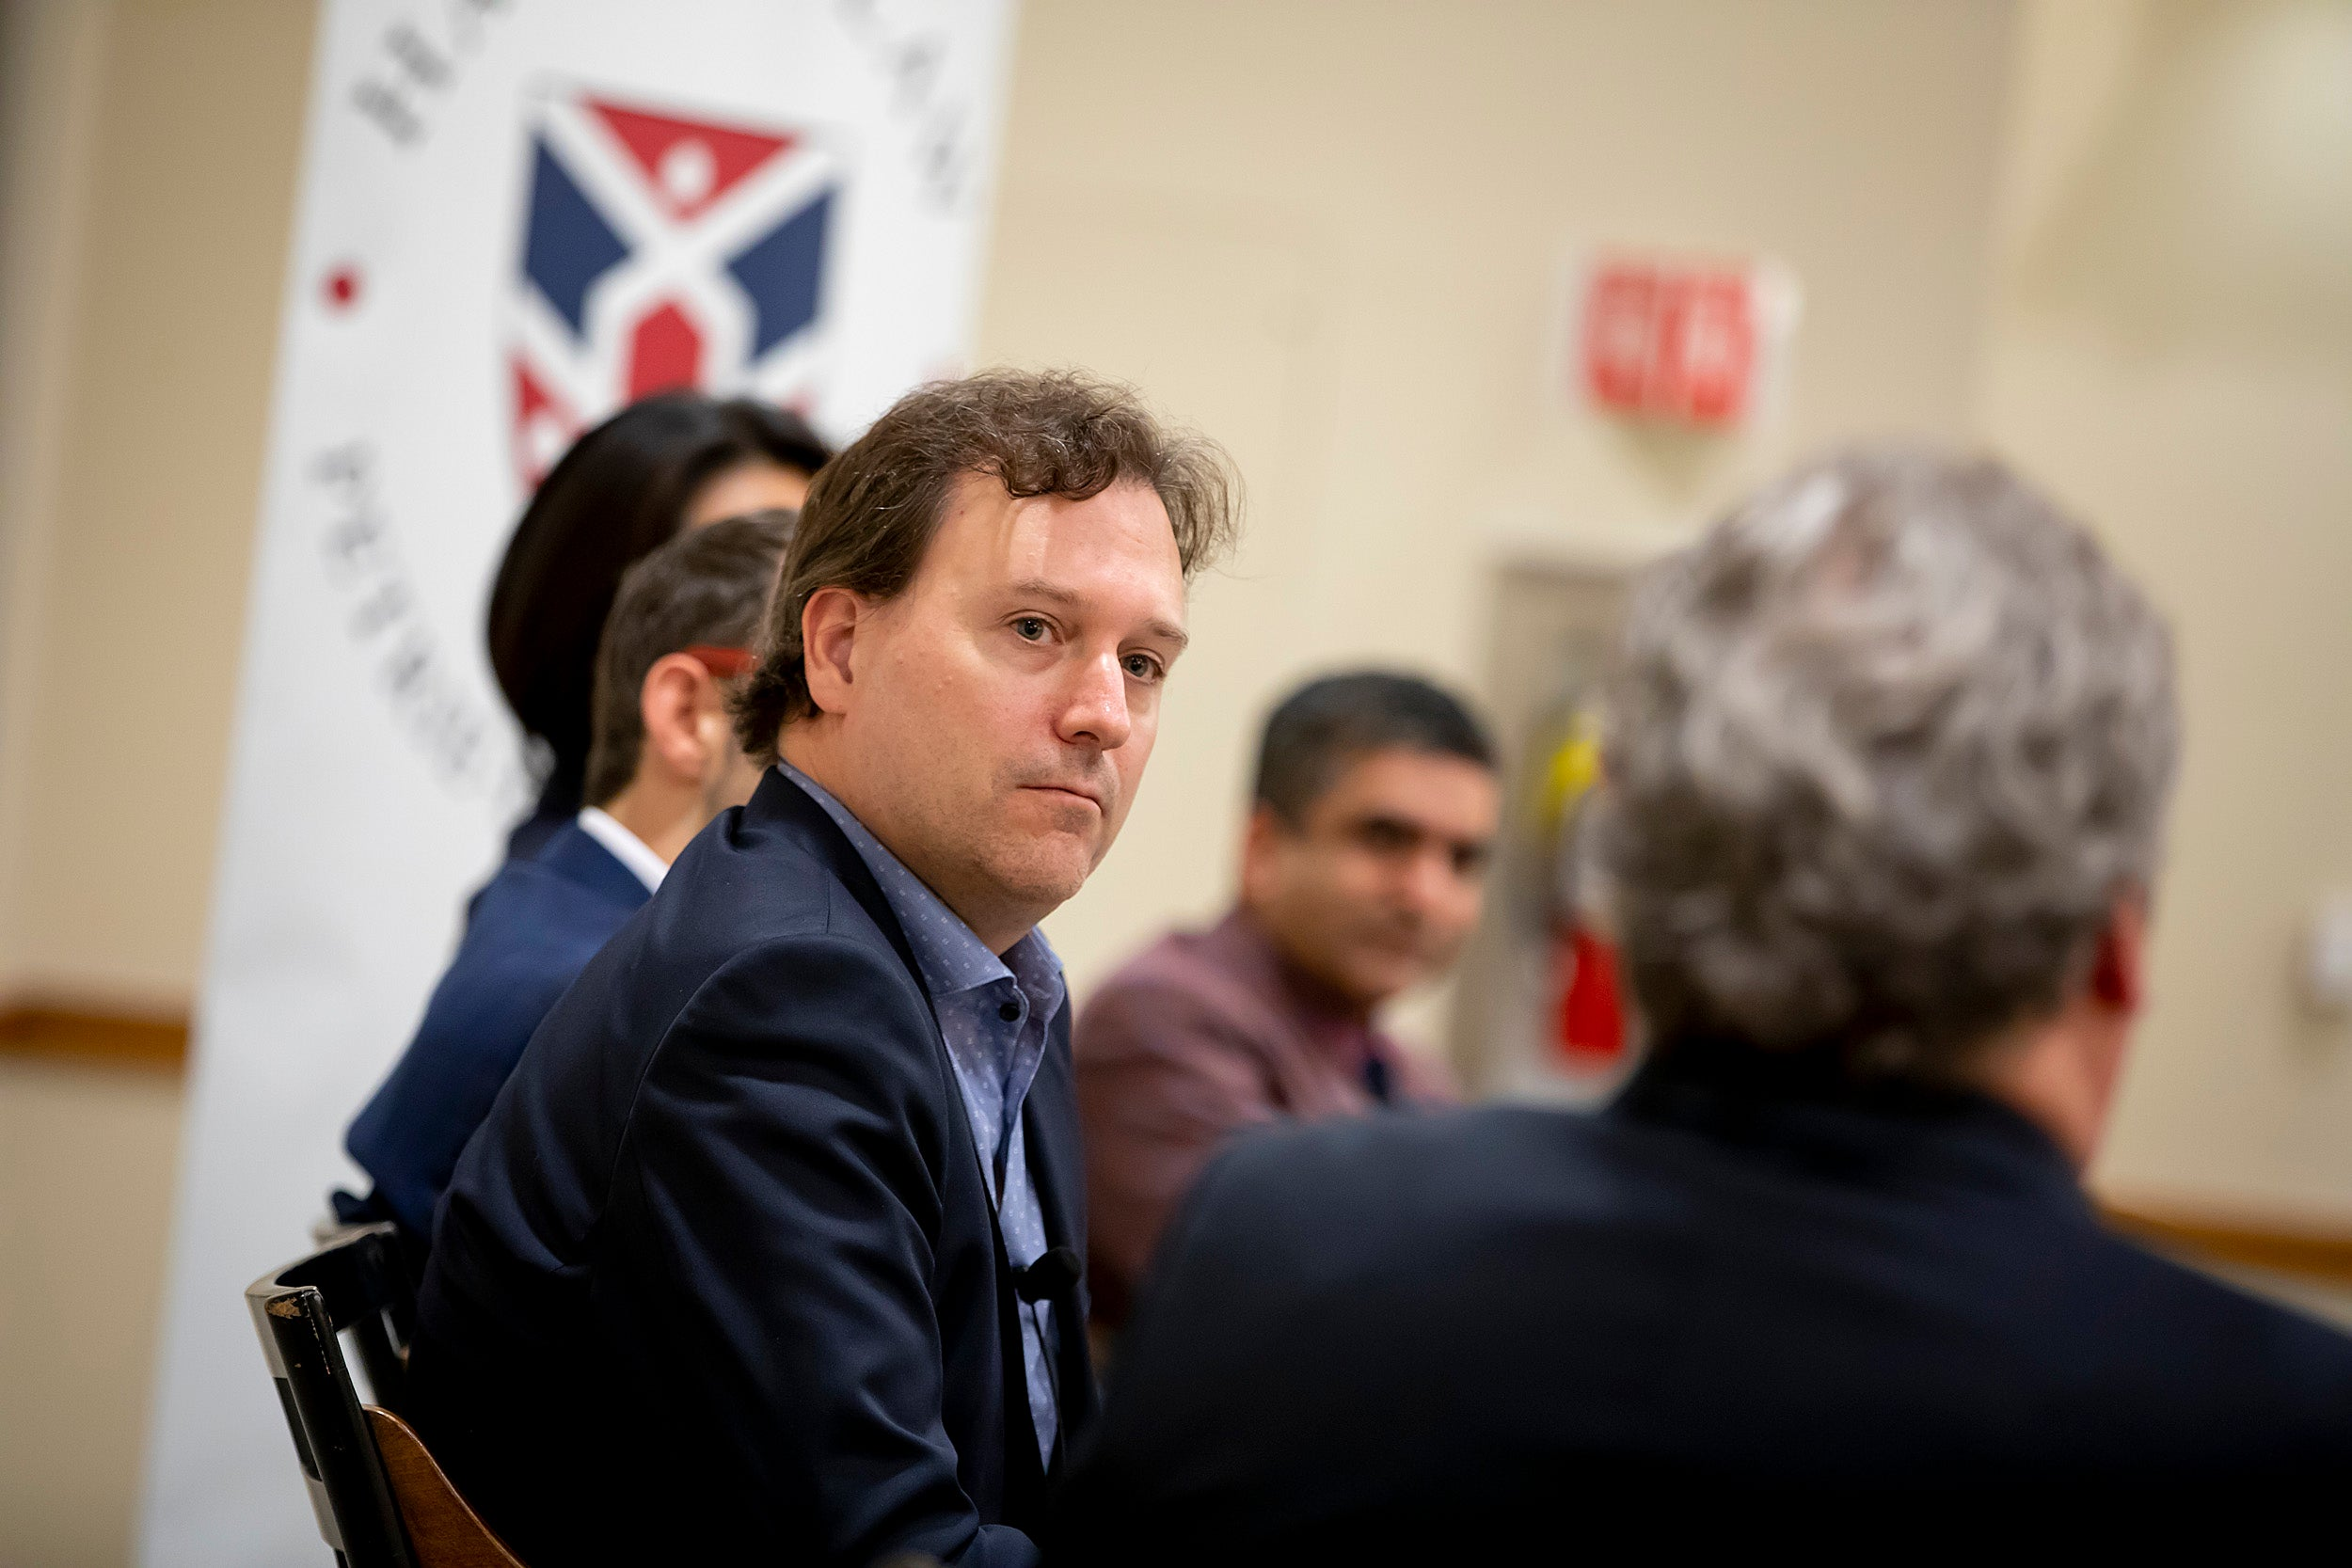 John Carreyrou, the reporter who broke the story about the problems of the blood-testing company Theranos, explains the rise and fall of the Silicon Valley firm, and sees it as a cautionary tale.